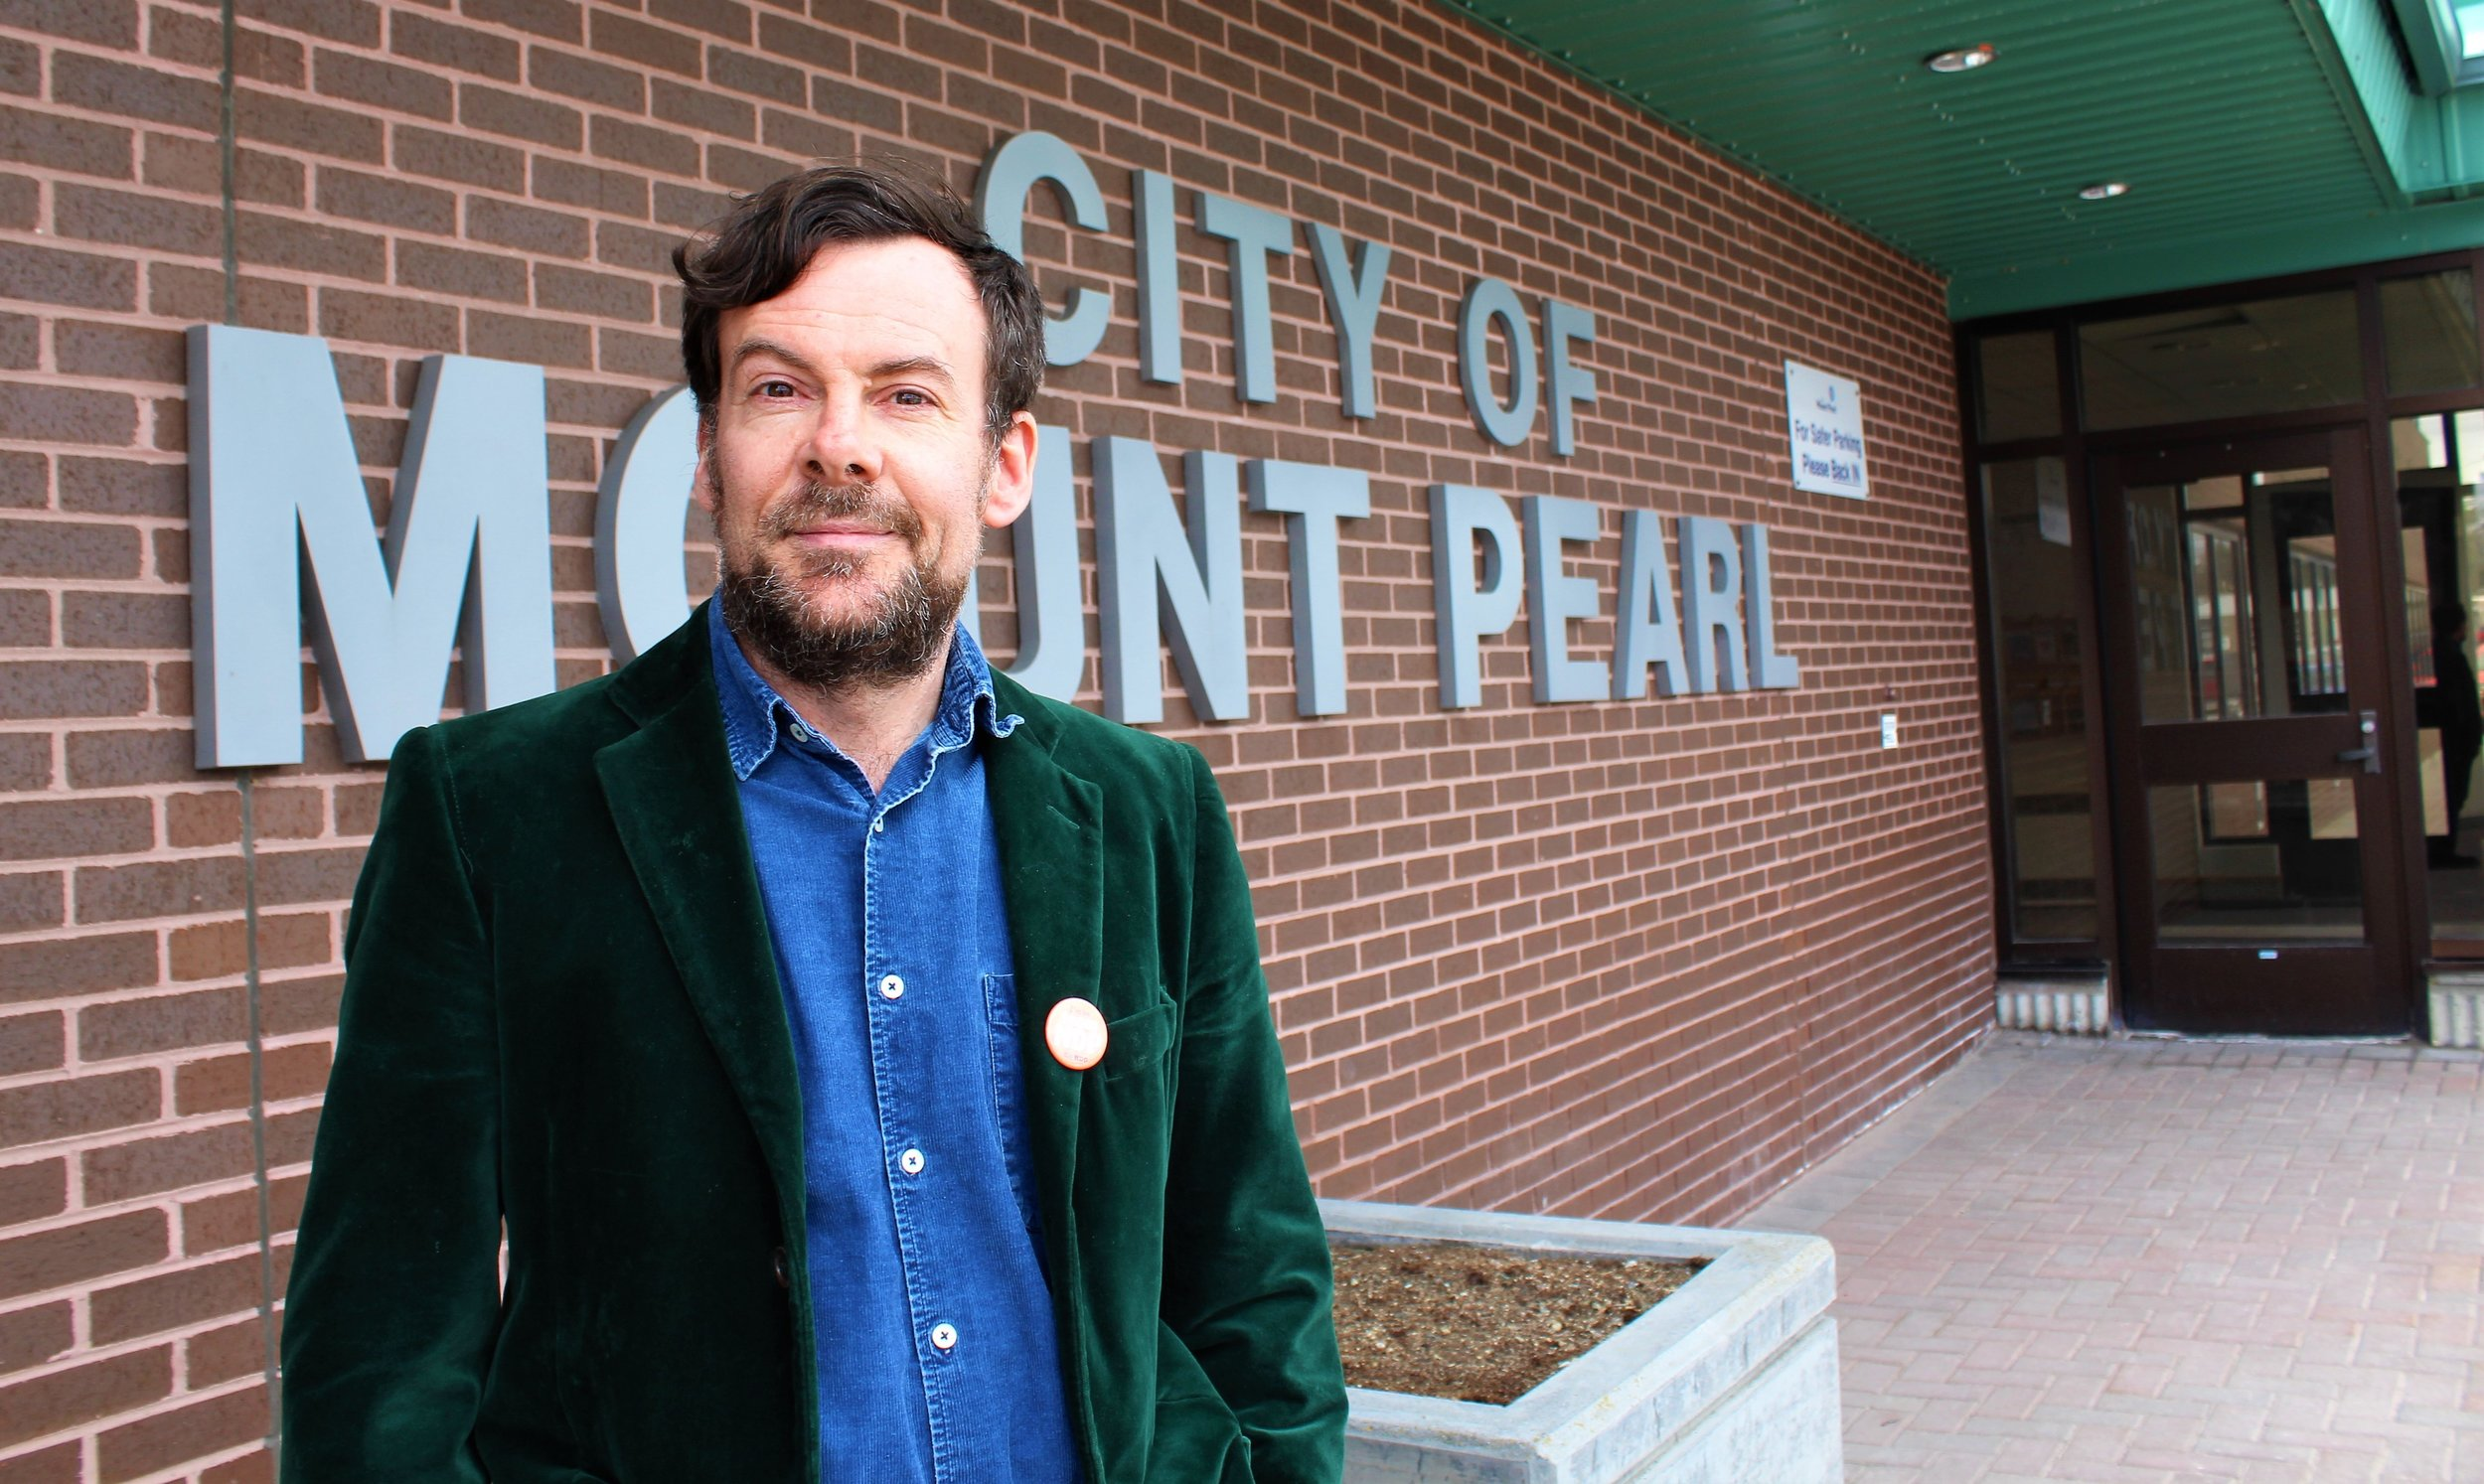 David Brake, the NDP candidate for Mount Pearl - Southlands district, hopes voters will pick something other than the 'tweedledee and tweedledum' parties this time around.